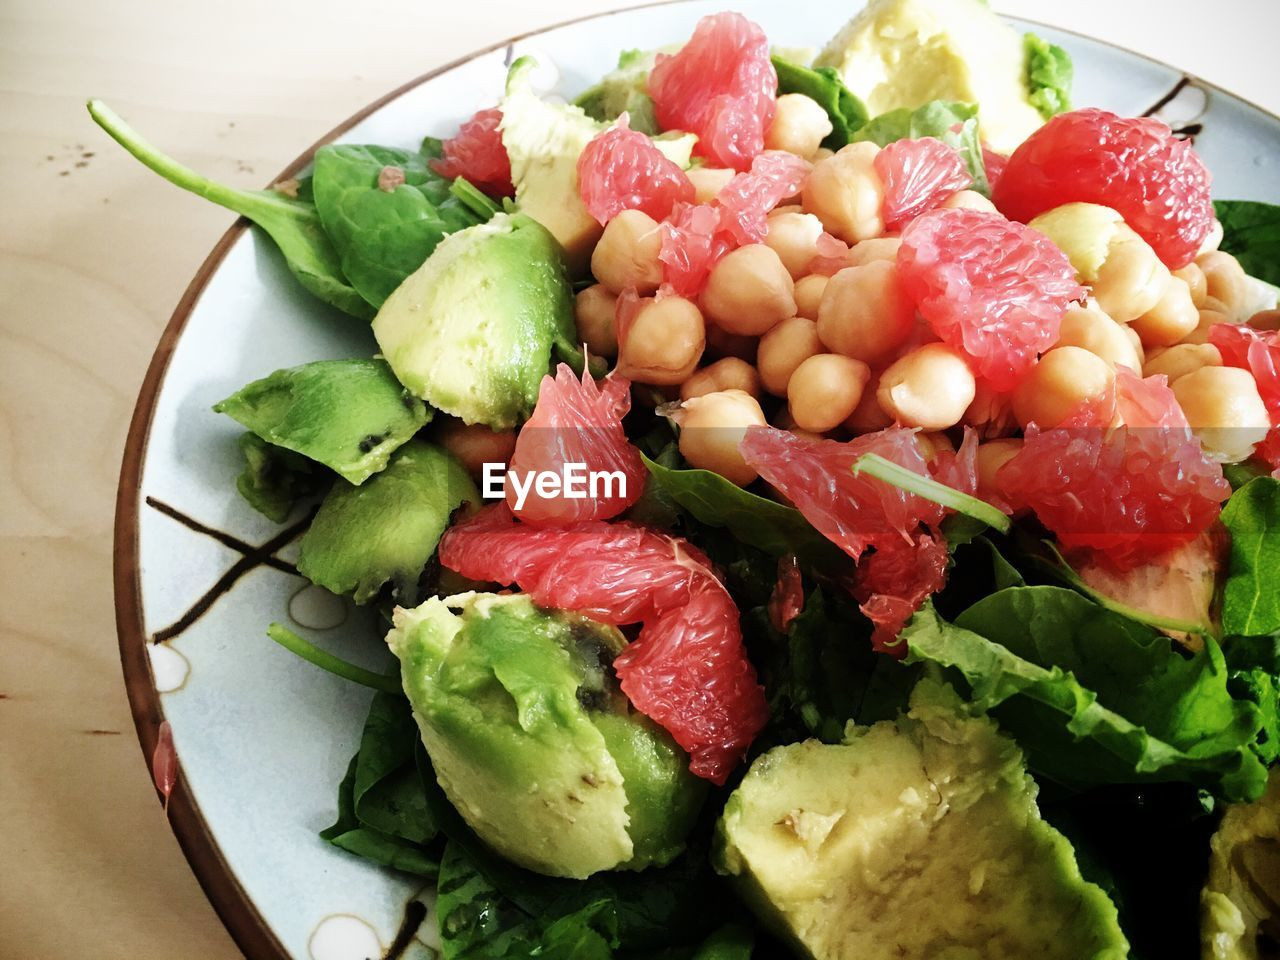 Close-up of salad with avocado and grapefruit on table